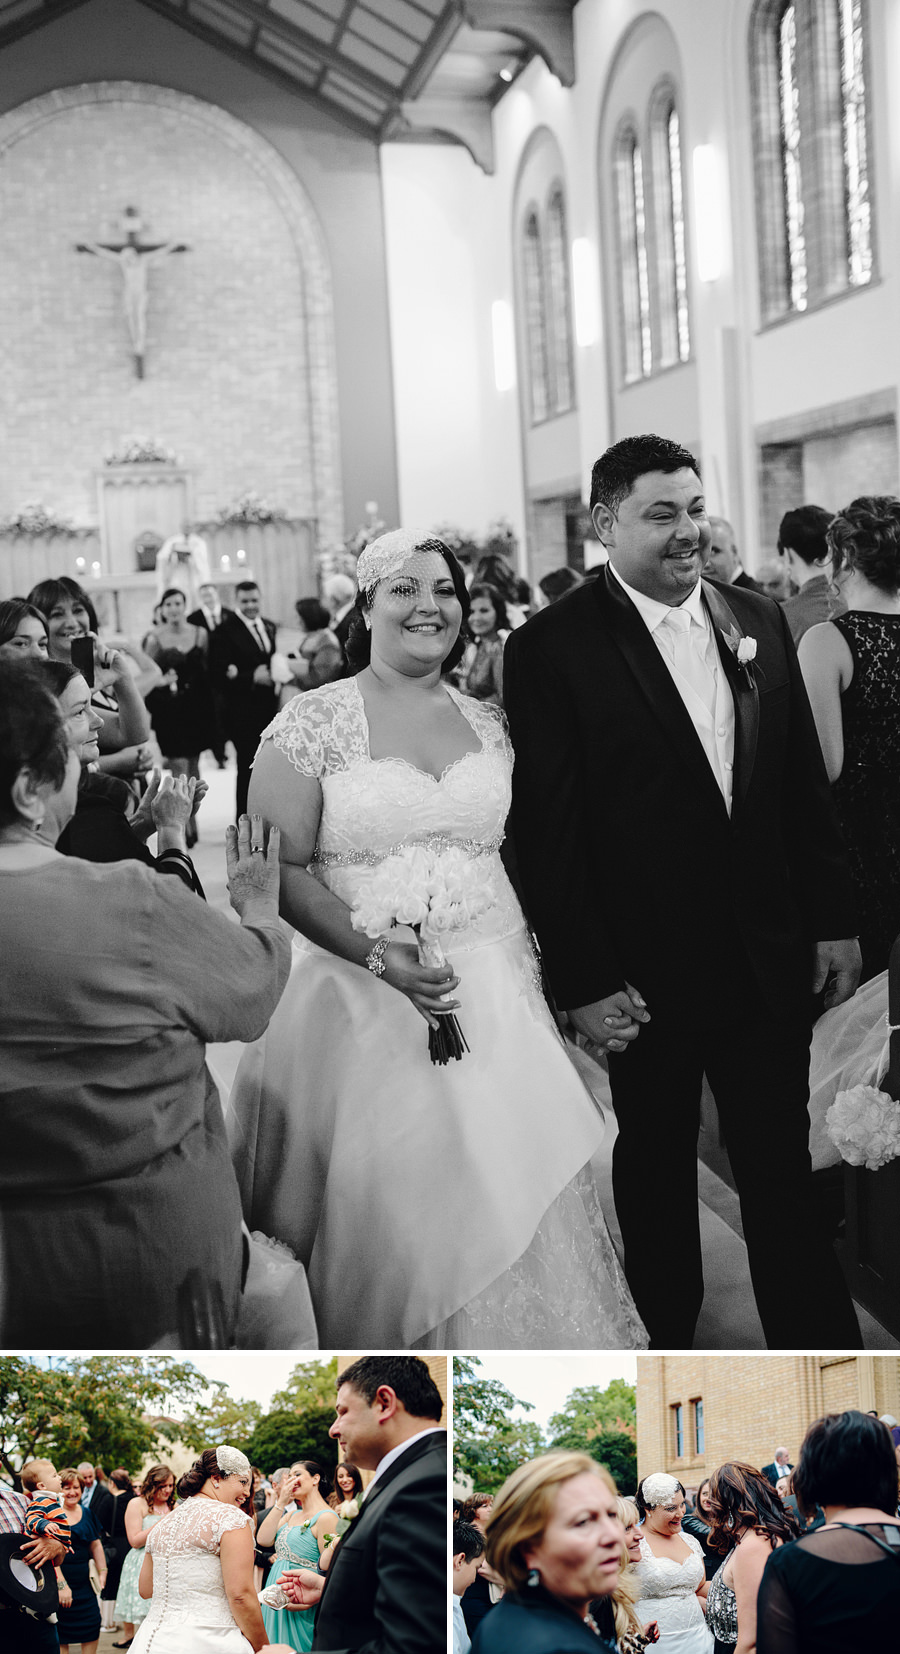 Melkite Catholic Wedding Photography: Walking down the aisle